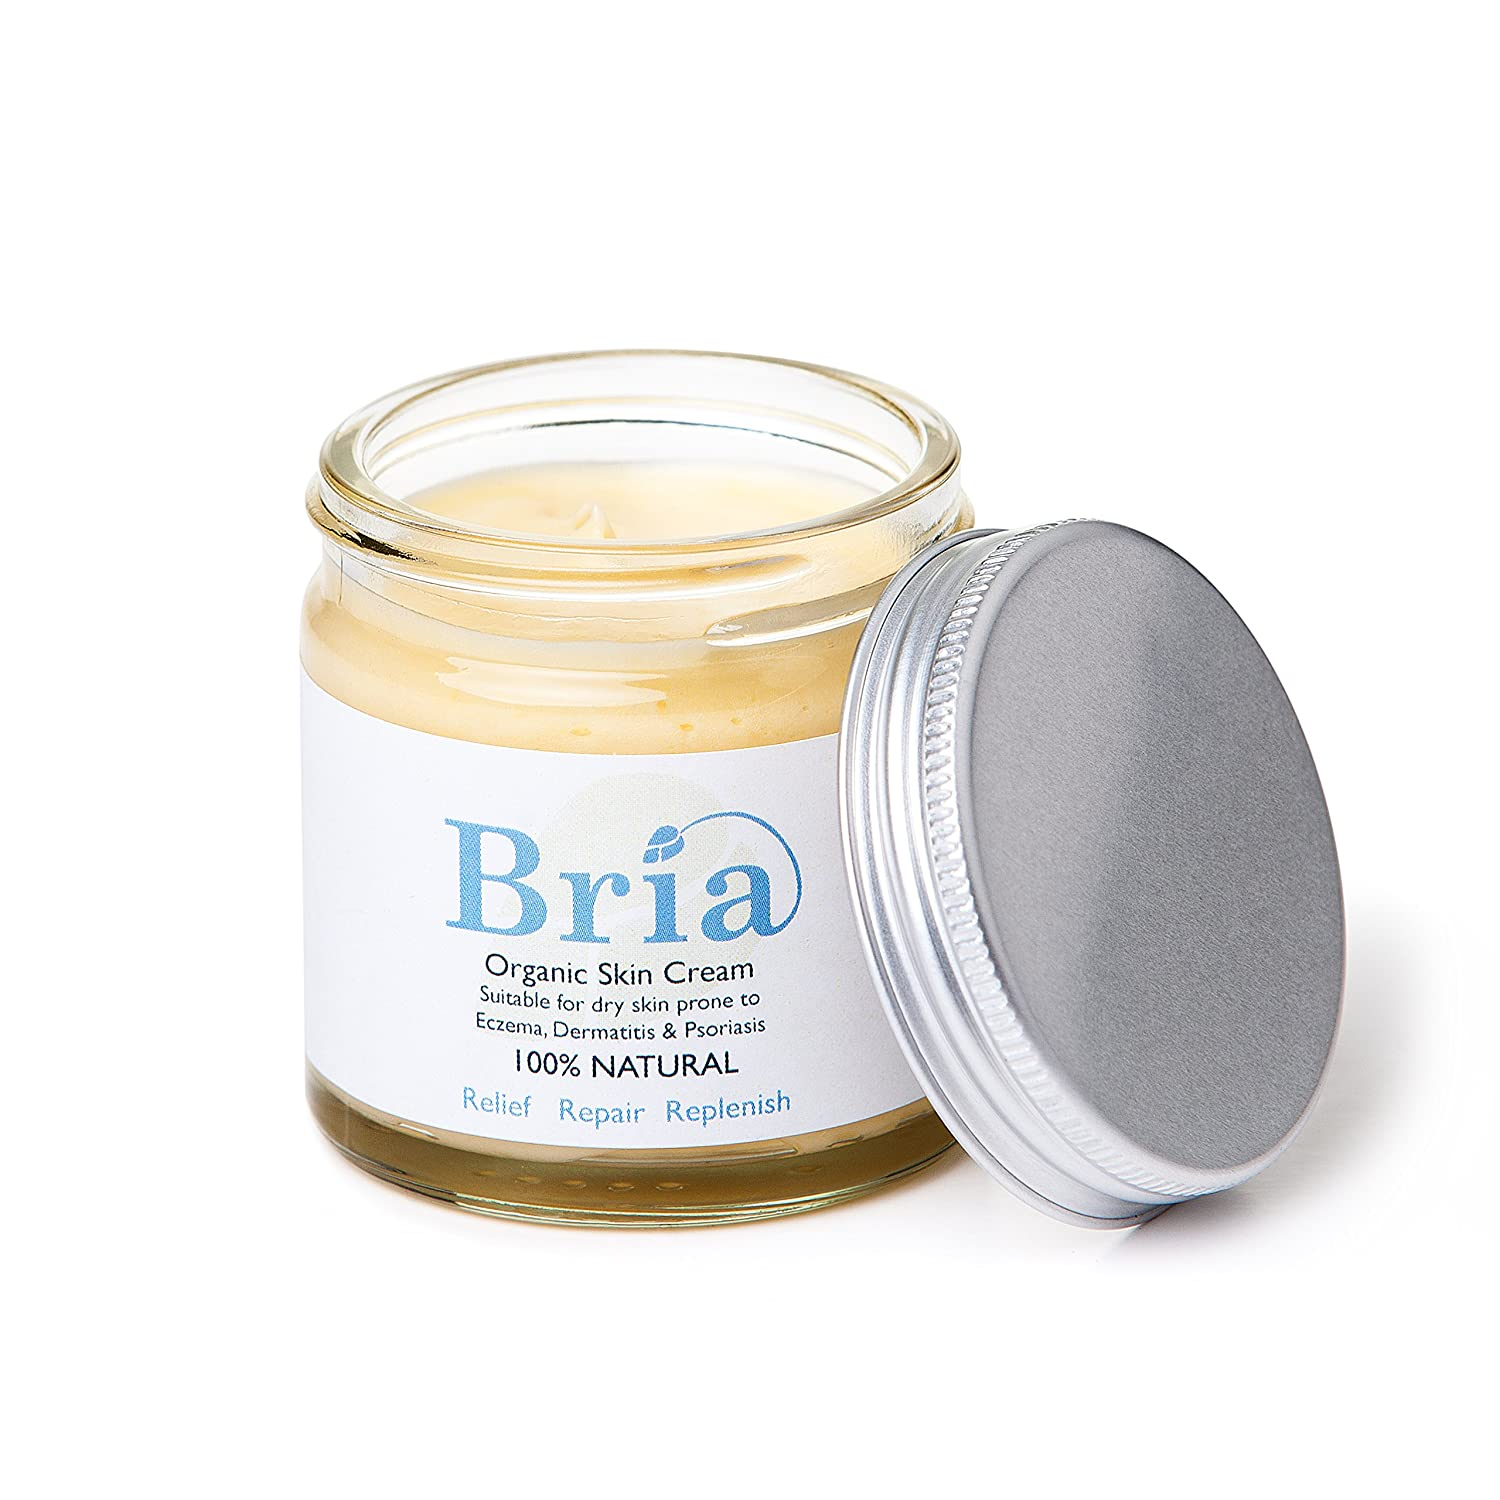 Bria 100% Natural Organic Soothing Skin Cream for Eczema Prone & Dry Skin suitable for Adults, Children & Babies - Scent Free (60ml) Bria Organics Ltd bria-005